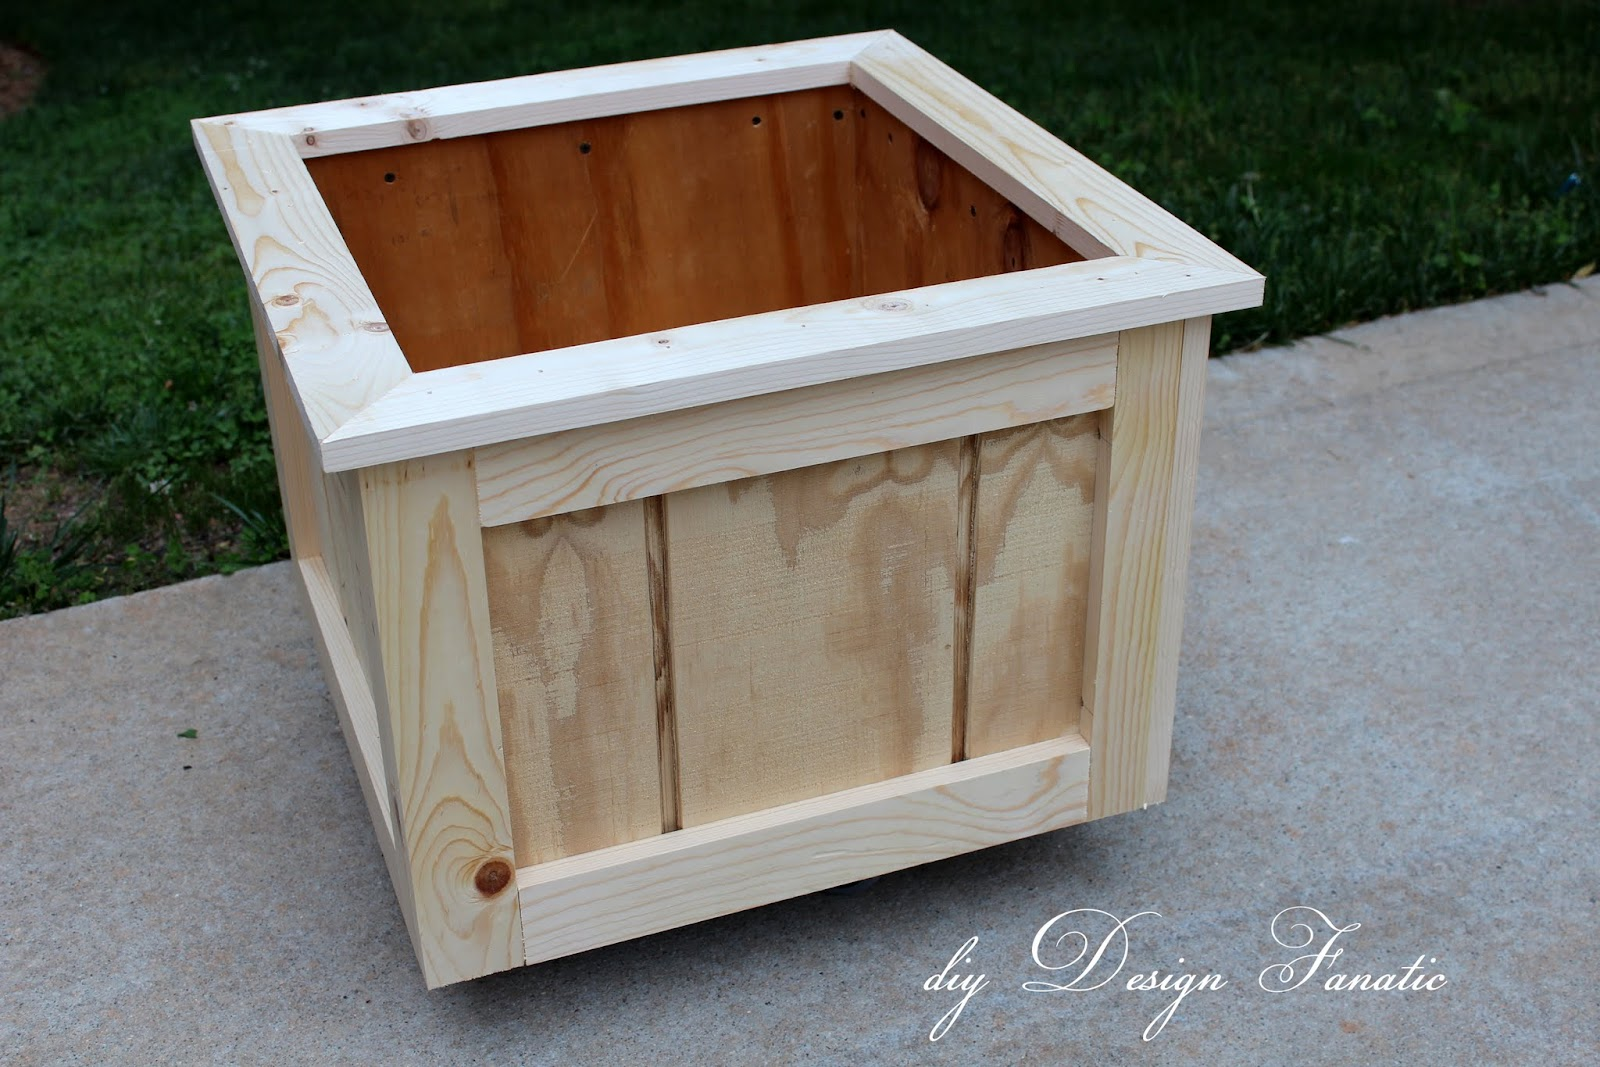 Diy design fanatic how to make a wood planter box for How to make a flower box out of pallets